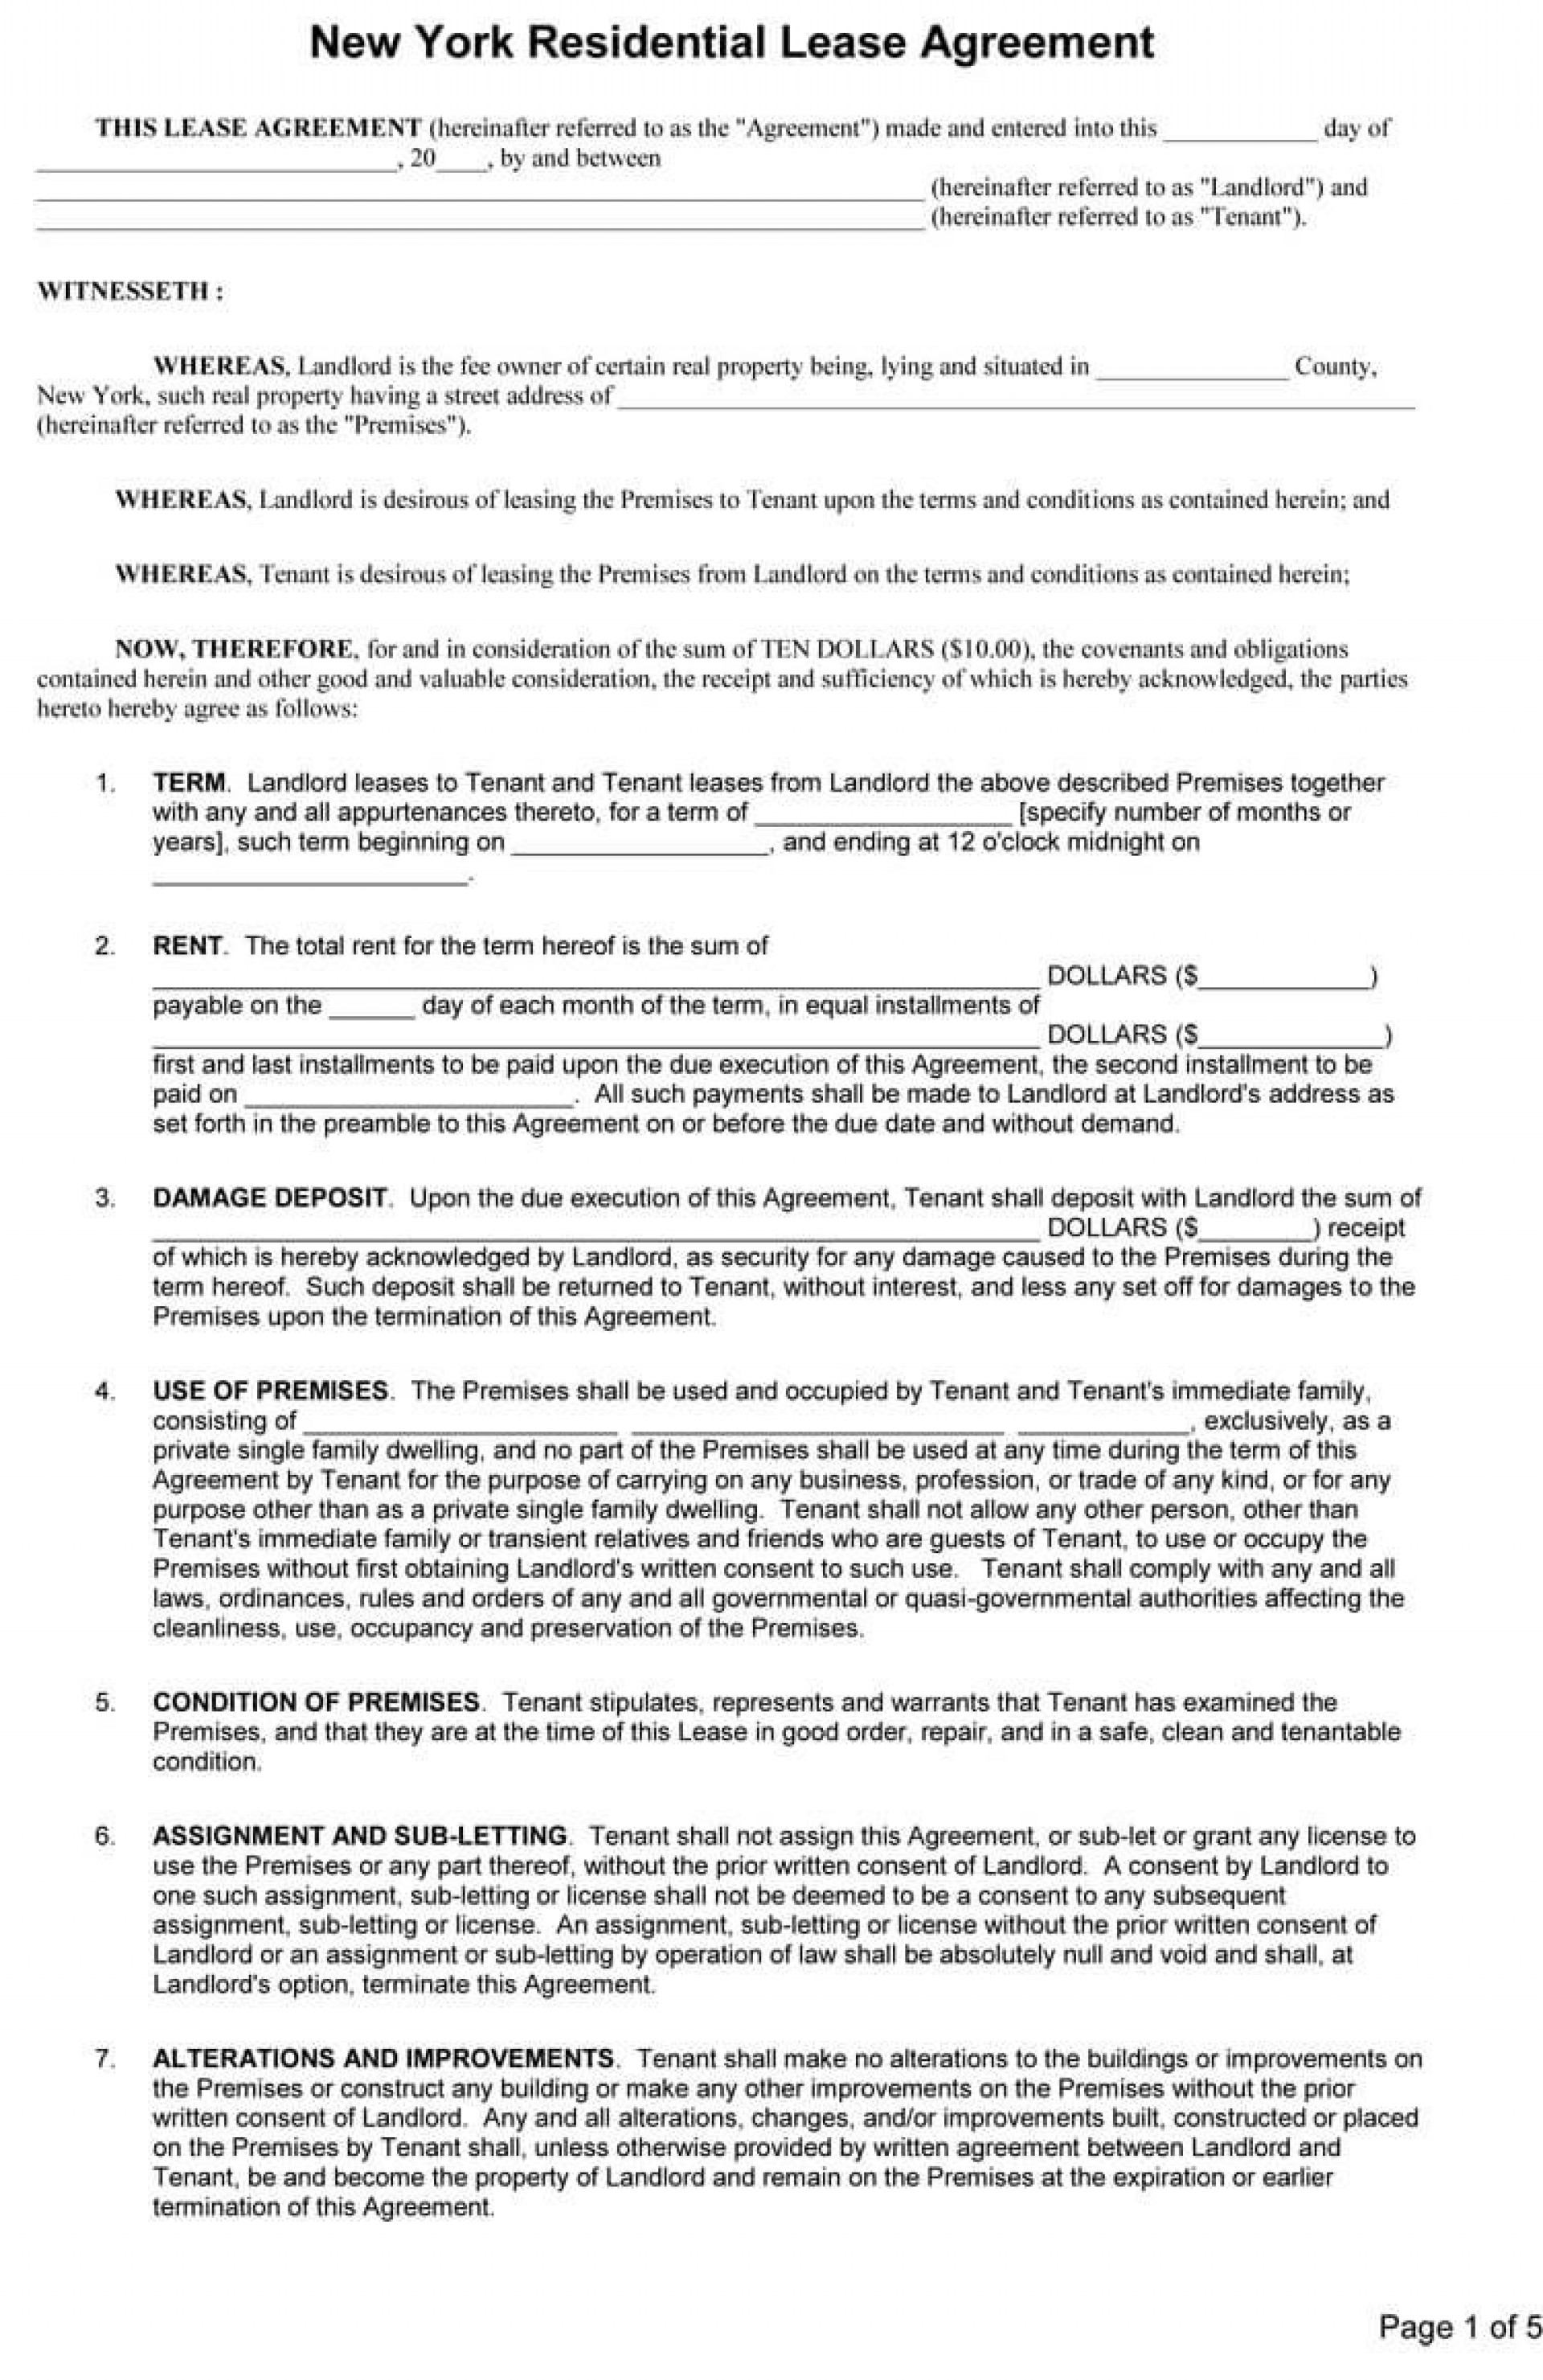 005 Impressive Rental Contract Template Free Download Concept  Agreement Sample Room Form1920